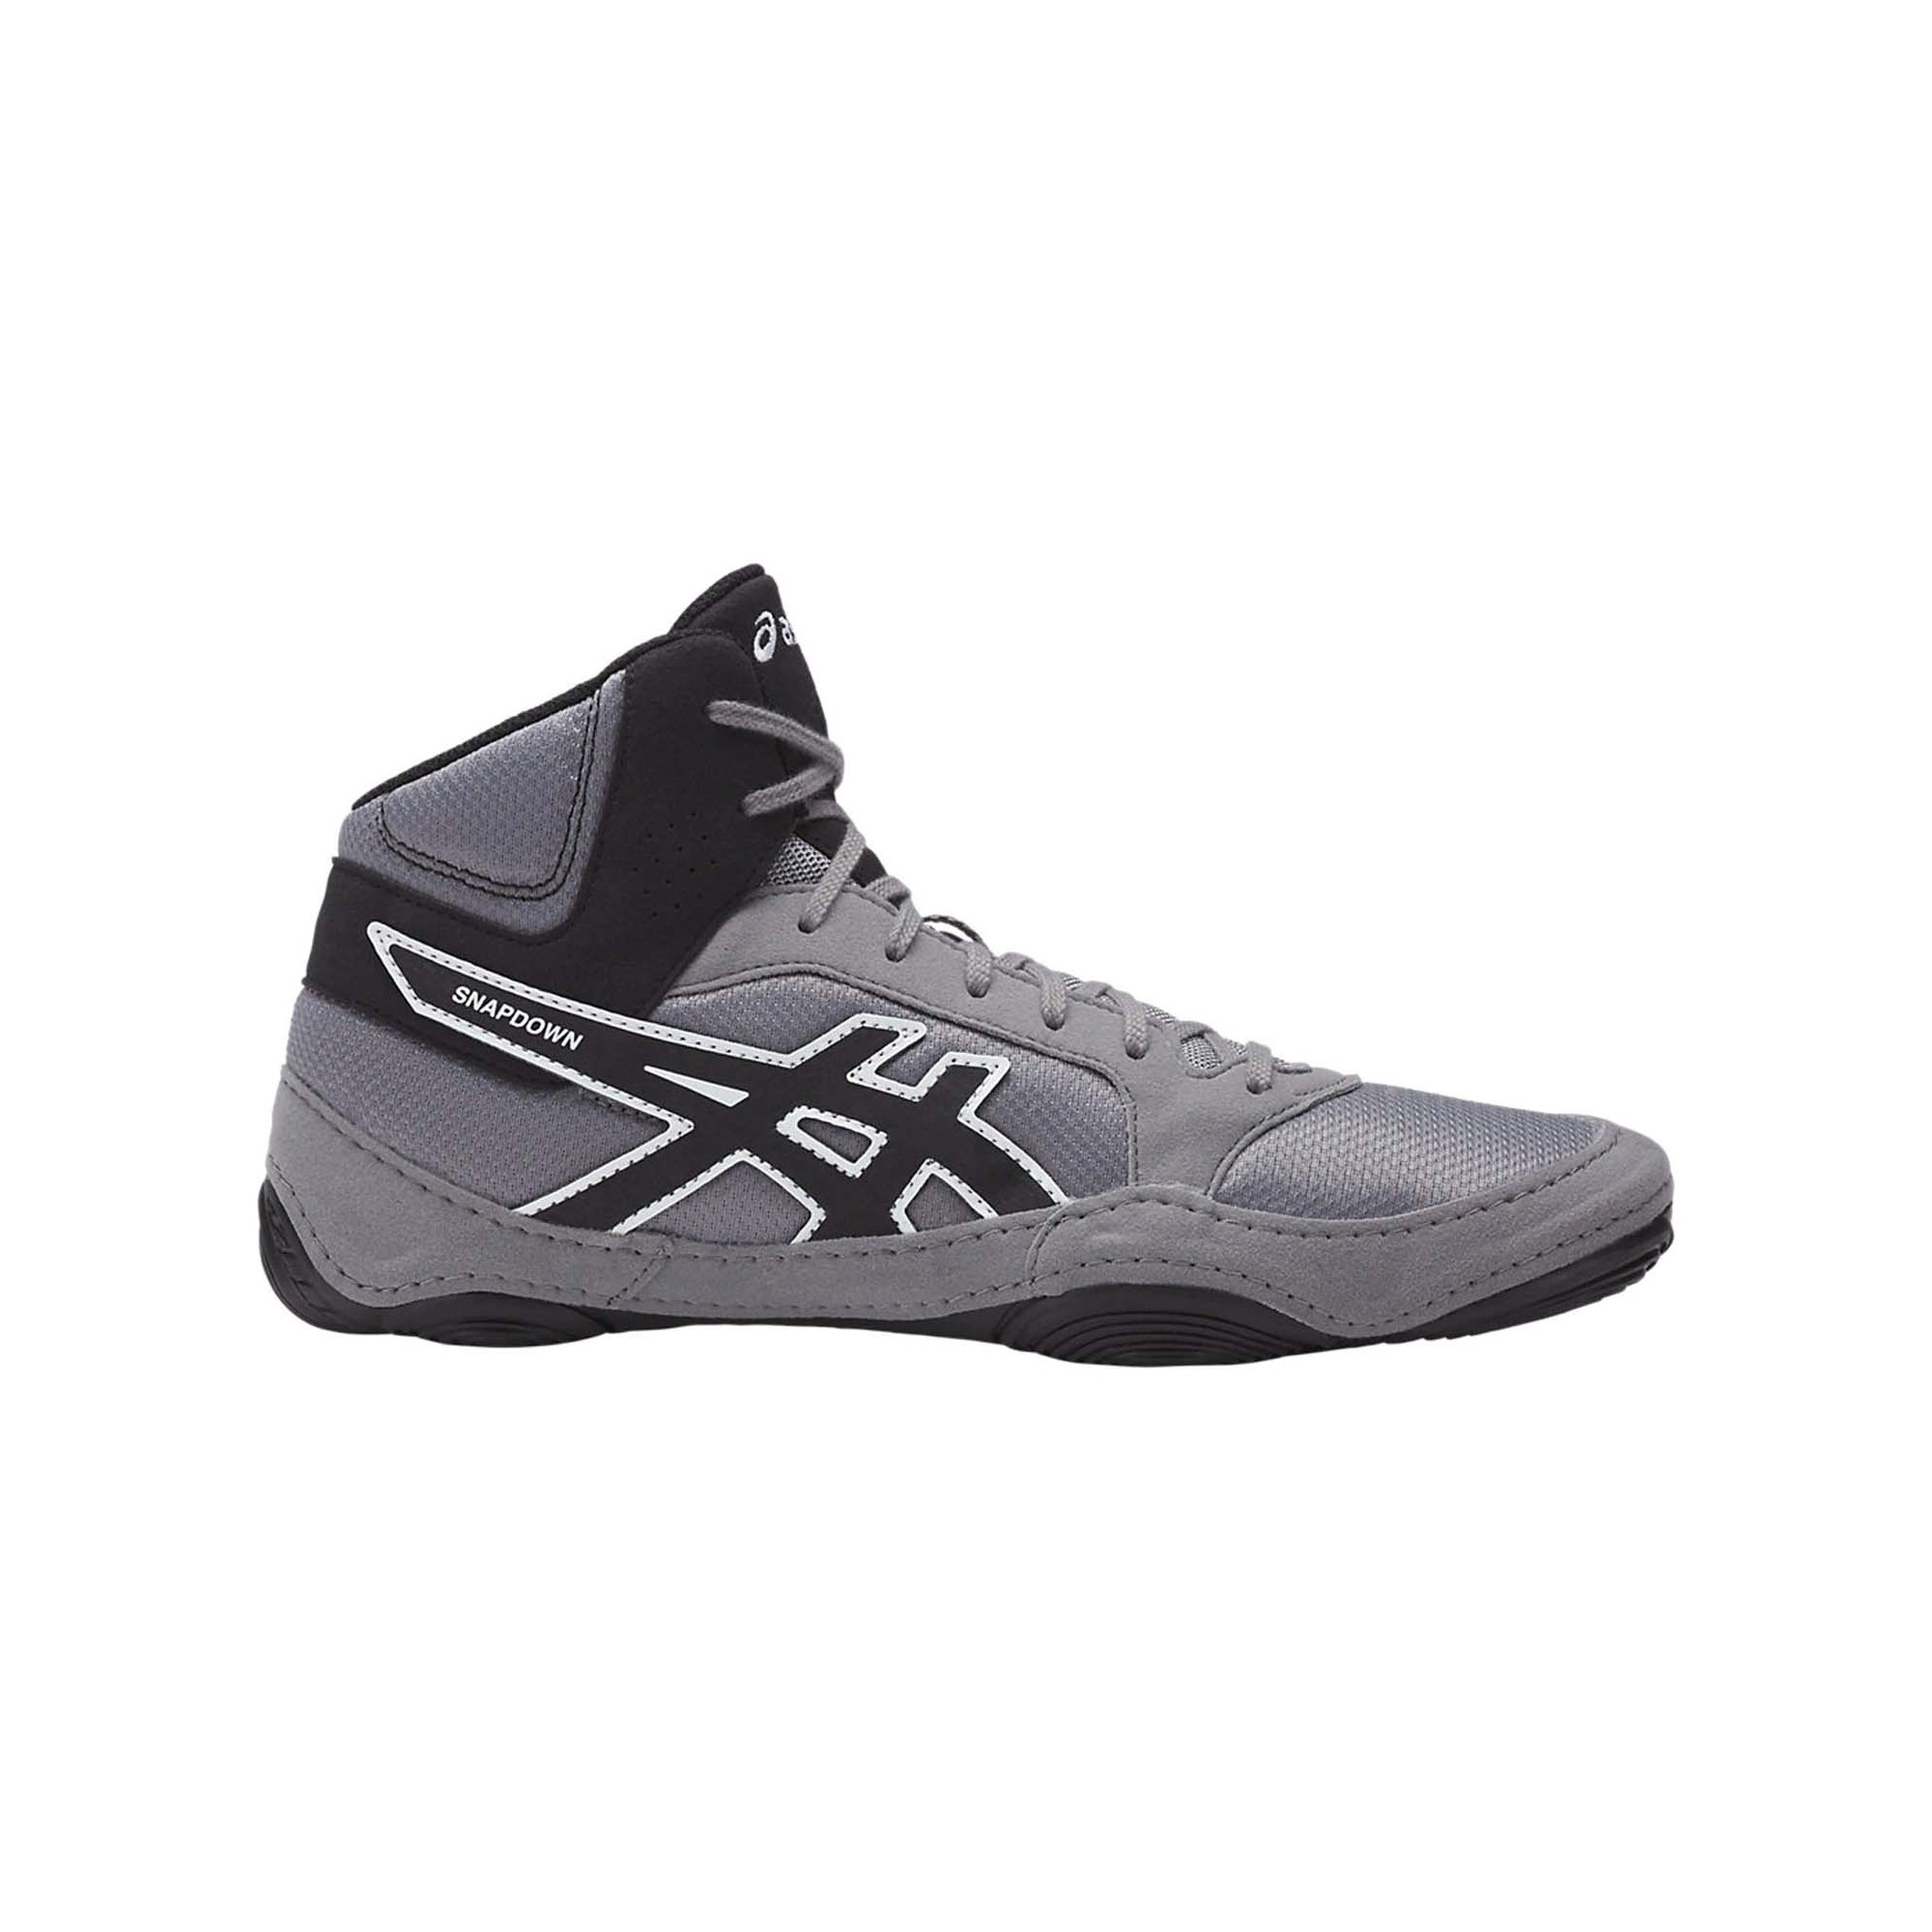 Wrestling 2 Asics Shoes Aluminumblacksilver Snapdown Men's f7mIg6bvYy